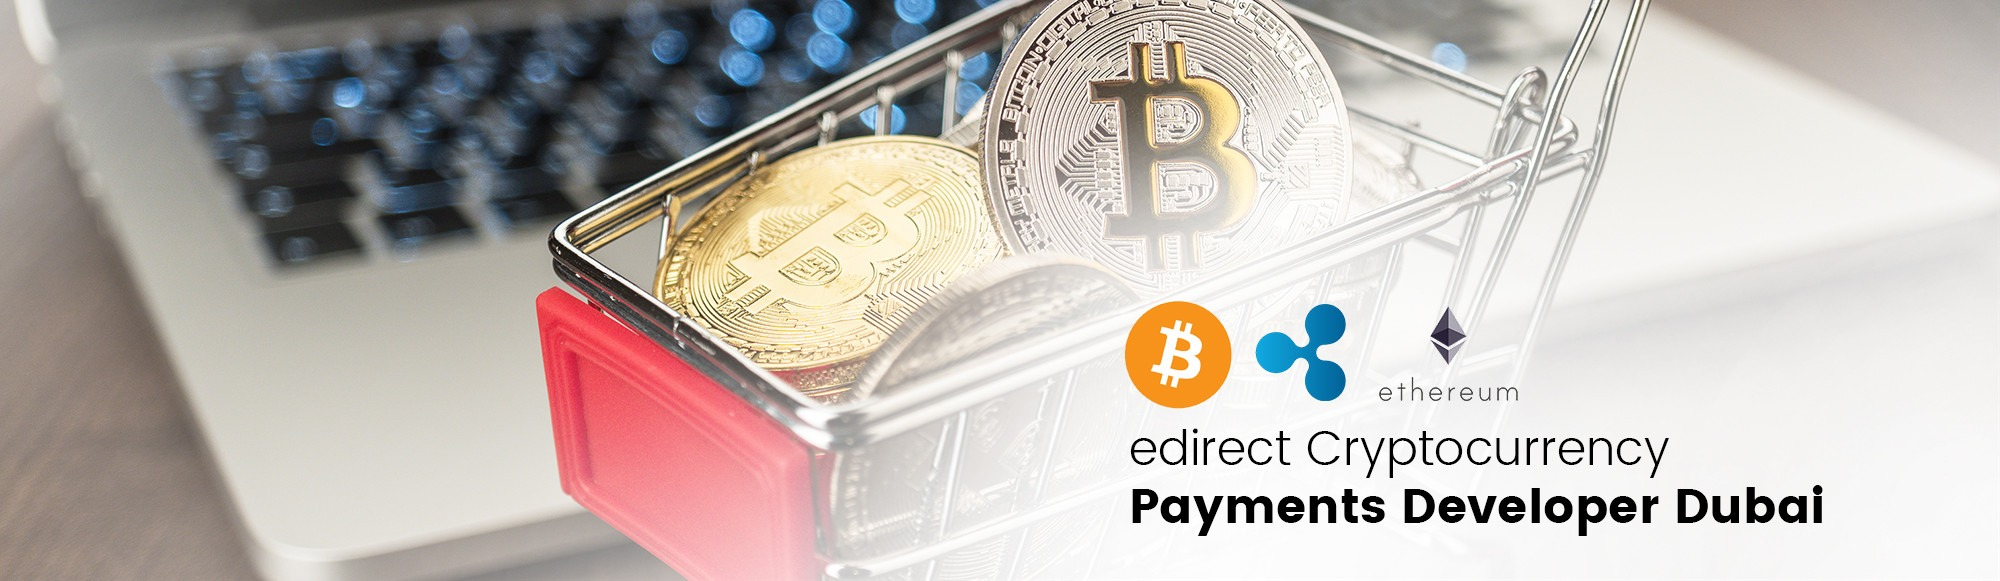 edirect Cryptocurrency Payments Developer Dubai